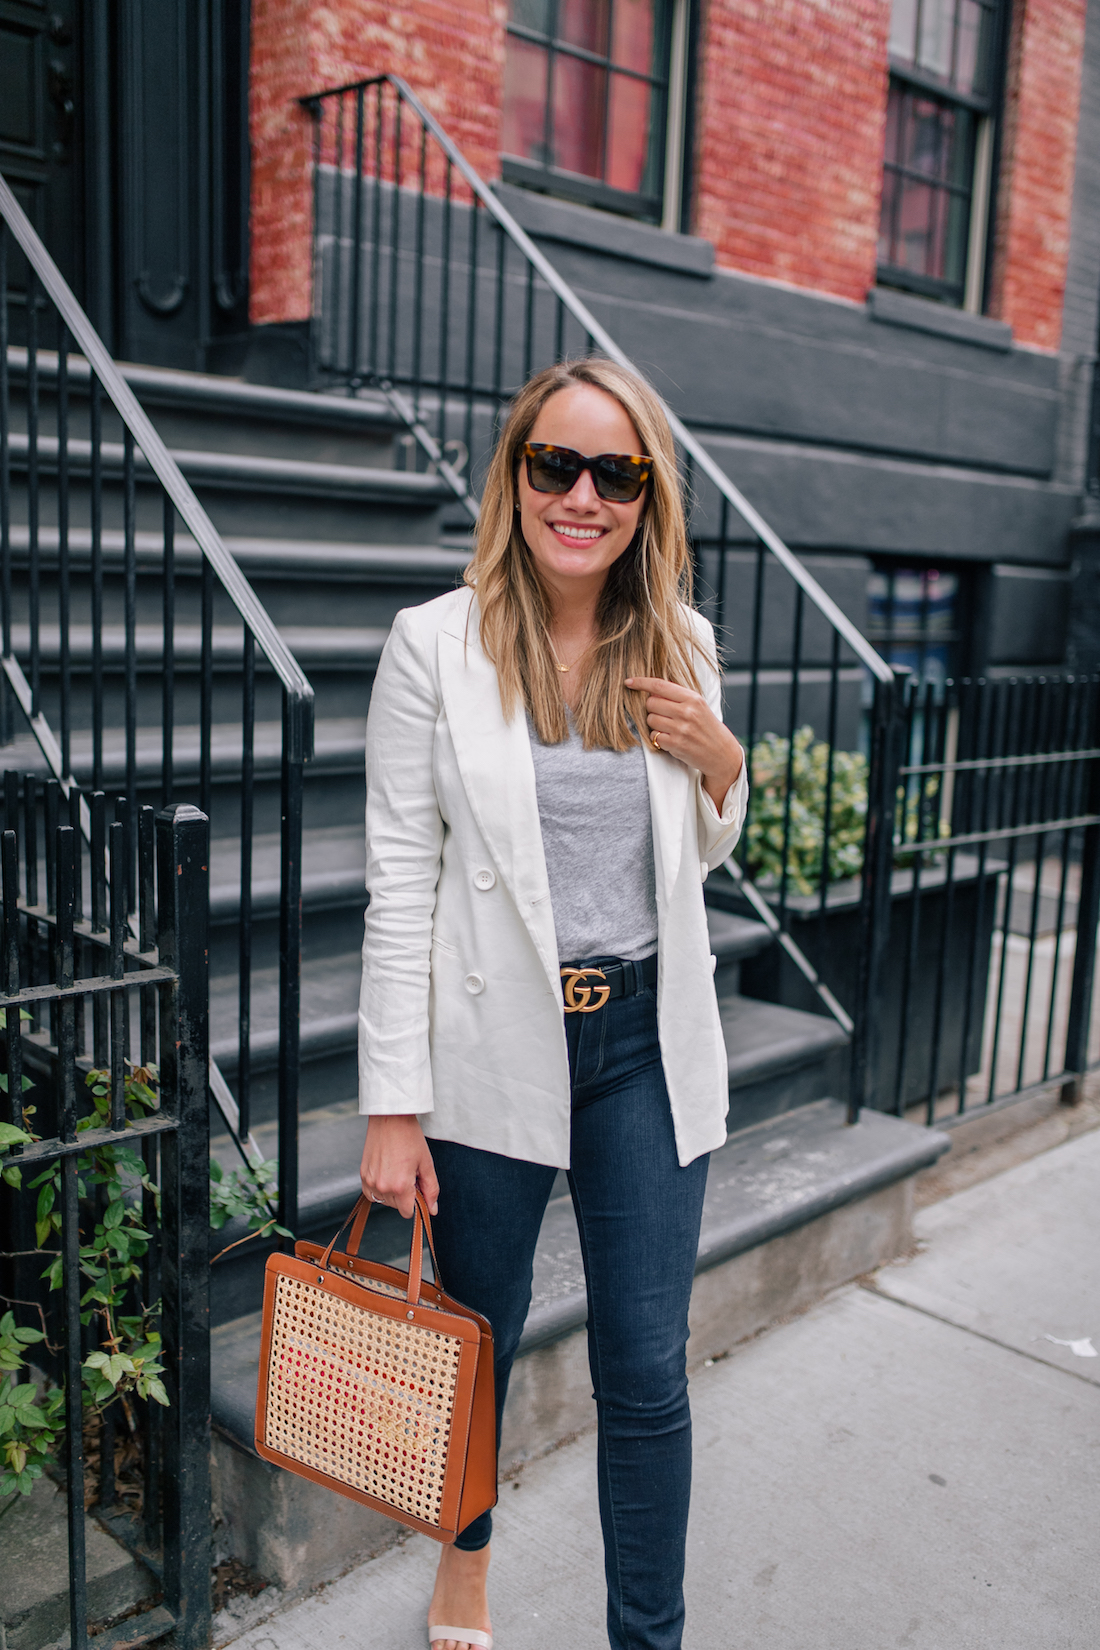 f0ef9f2164cc1 Outfit Details: White Blazer For Spring // Madewell Tee // Paige Jeans /